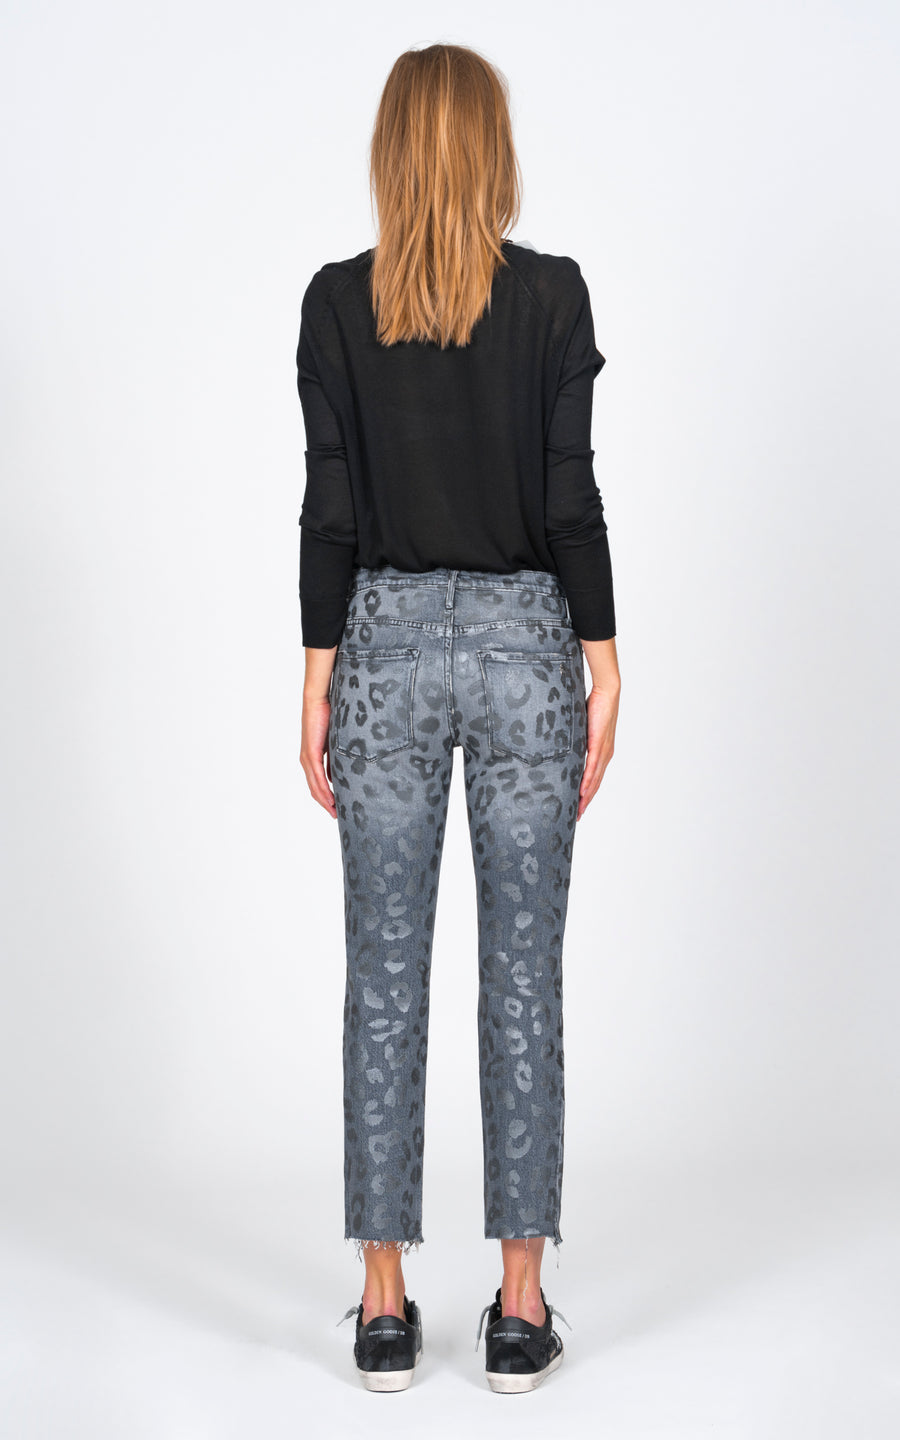 Brooklyn Straight Fray with Leopard Print - Toxic-Jean-Black Orchid Denim